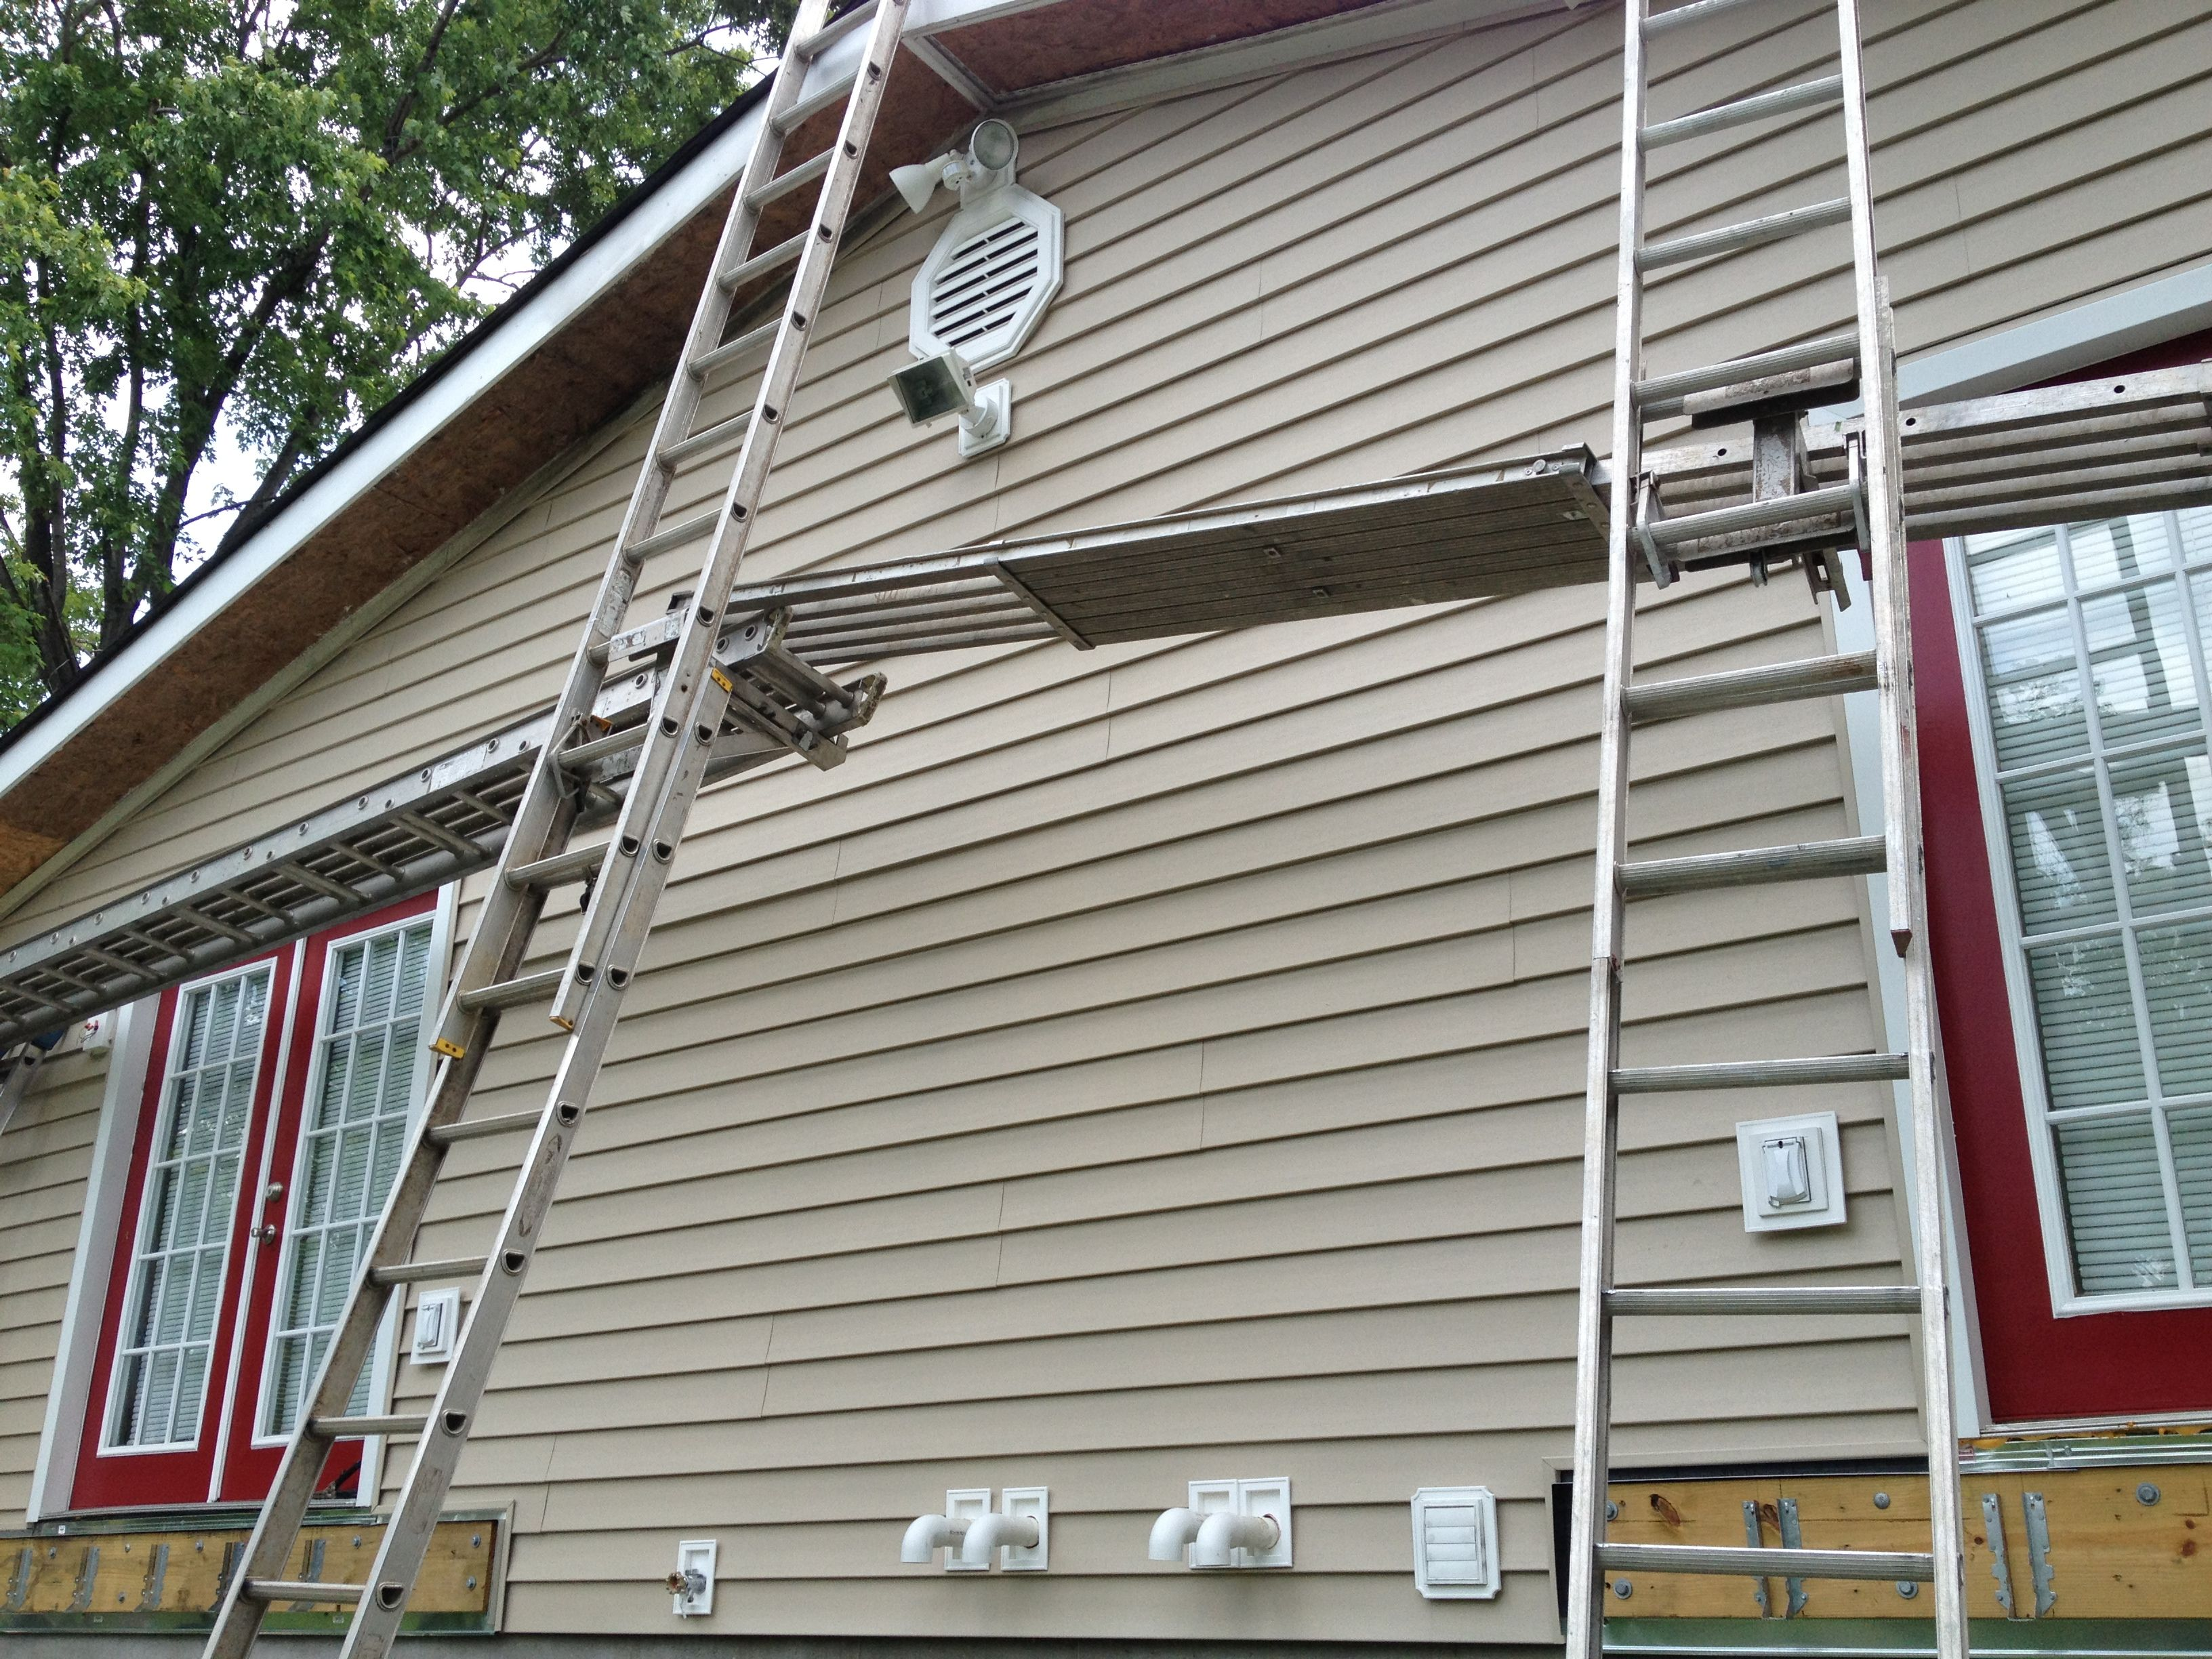 Exterior window trim ideas 2bwith vinyl siding - Find This Pin And More On Mastic Vinyl Siding